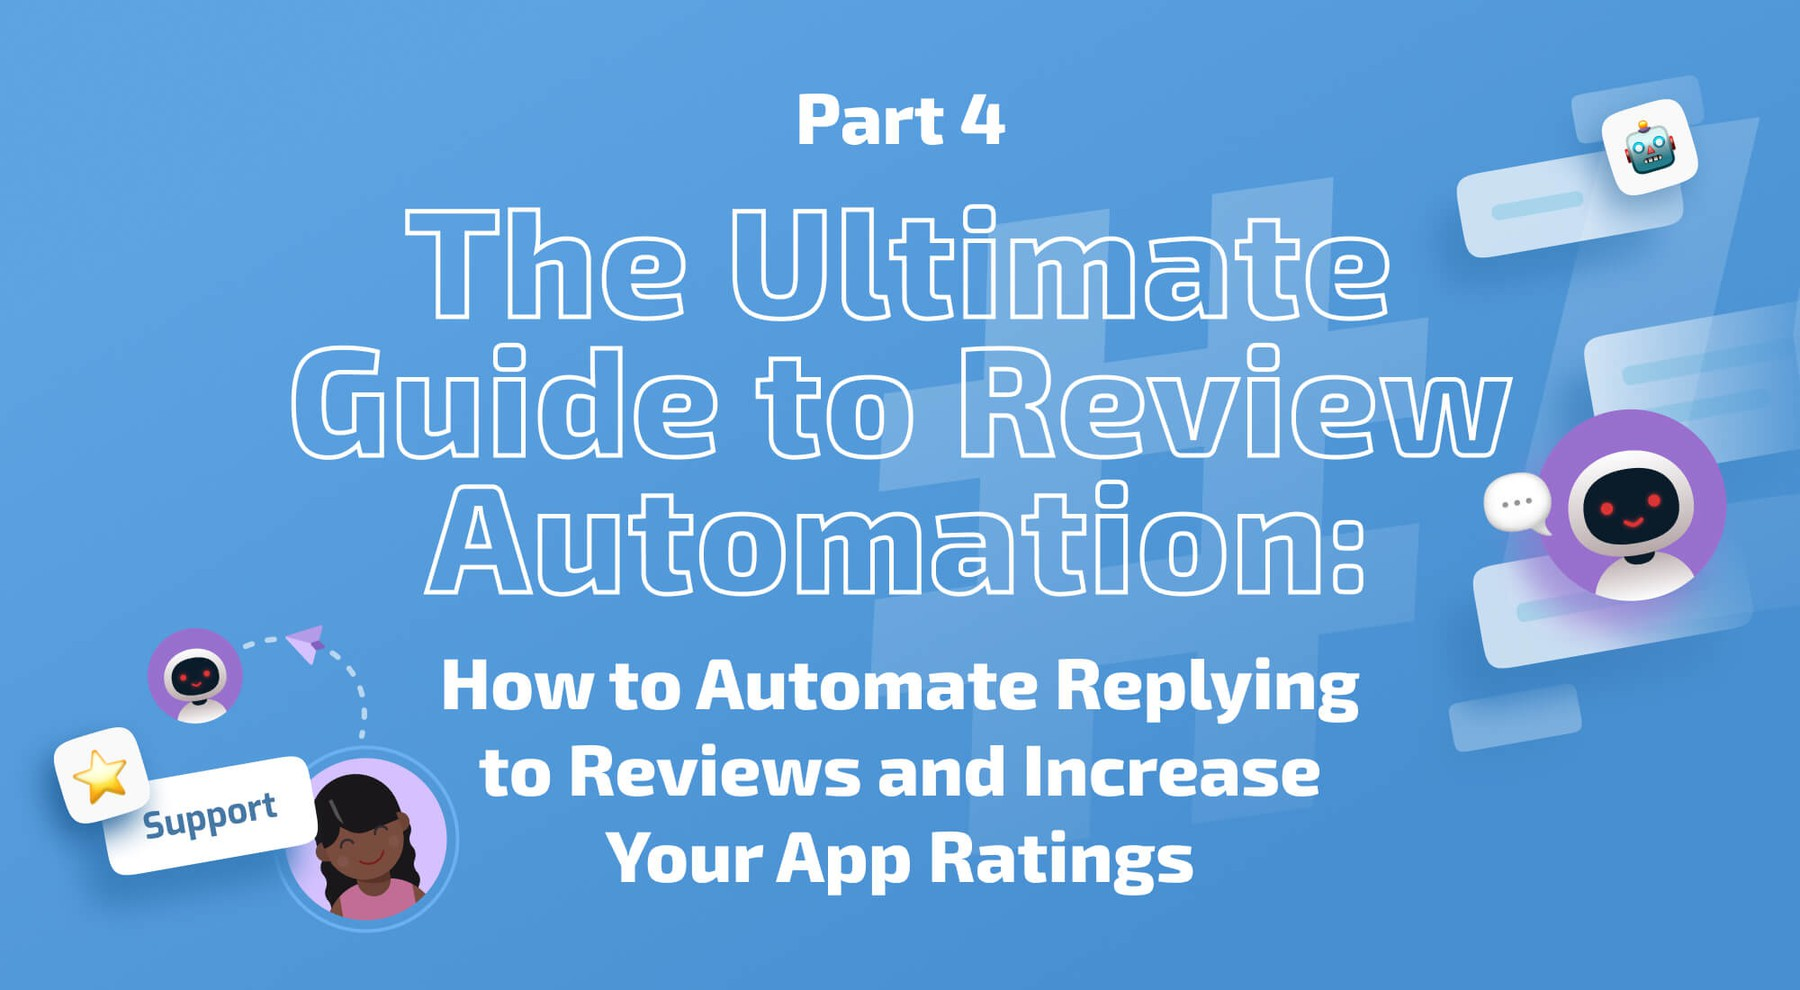 The Ultimate Guide to Review Automation: How to Automate Replying to Reviews and Increase Your App Ratings